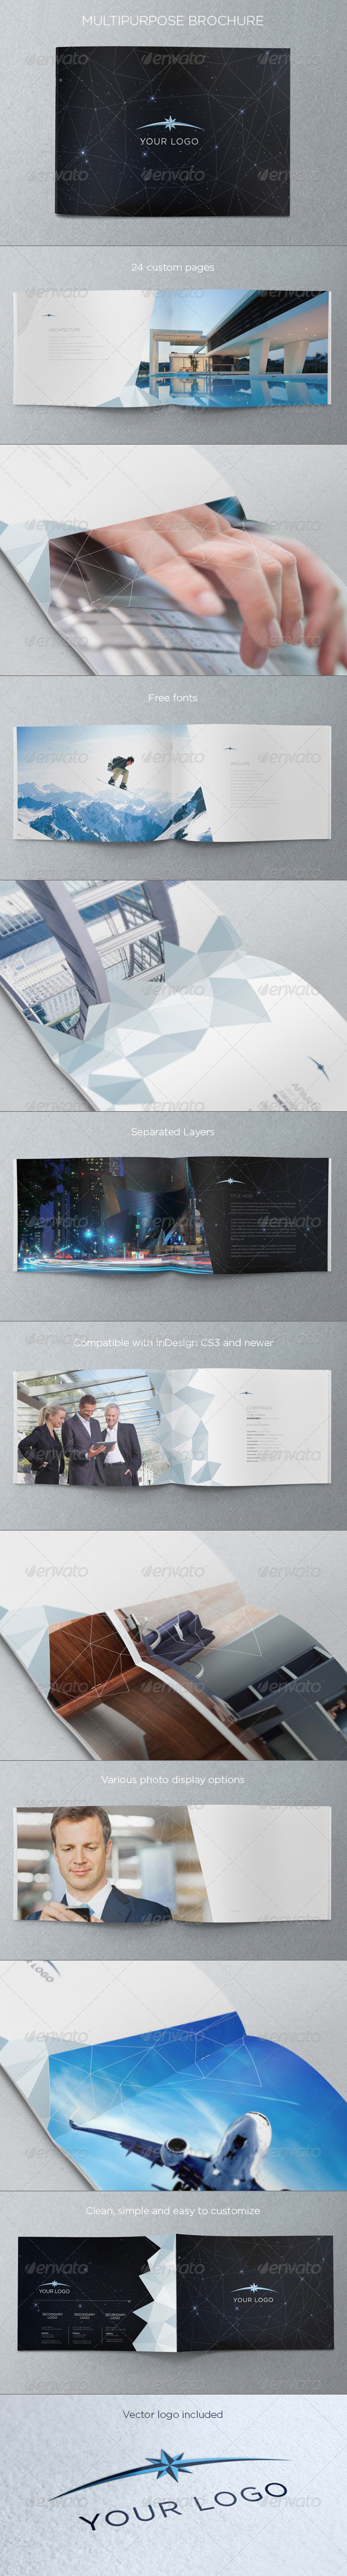 Multipurpose Brochure - Print Templates